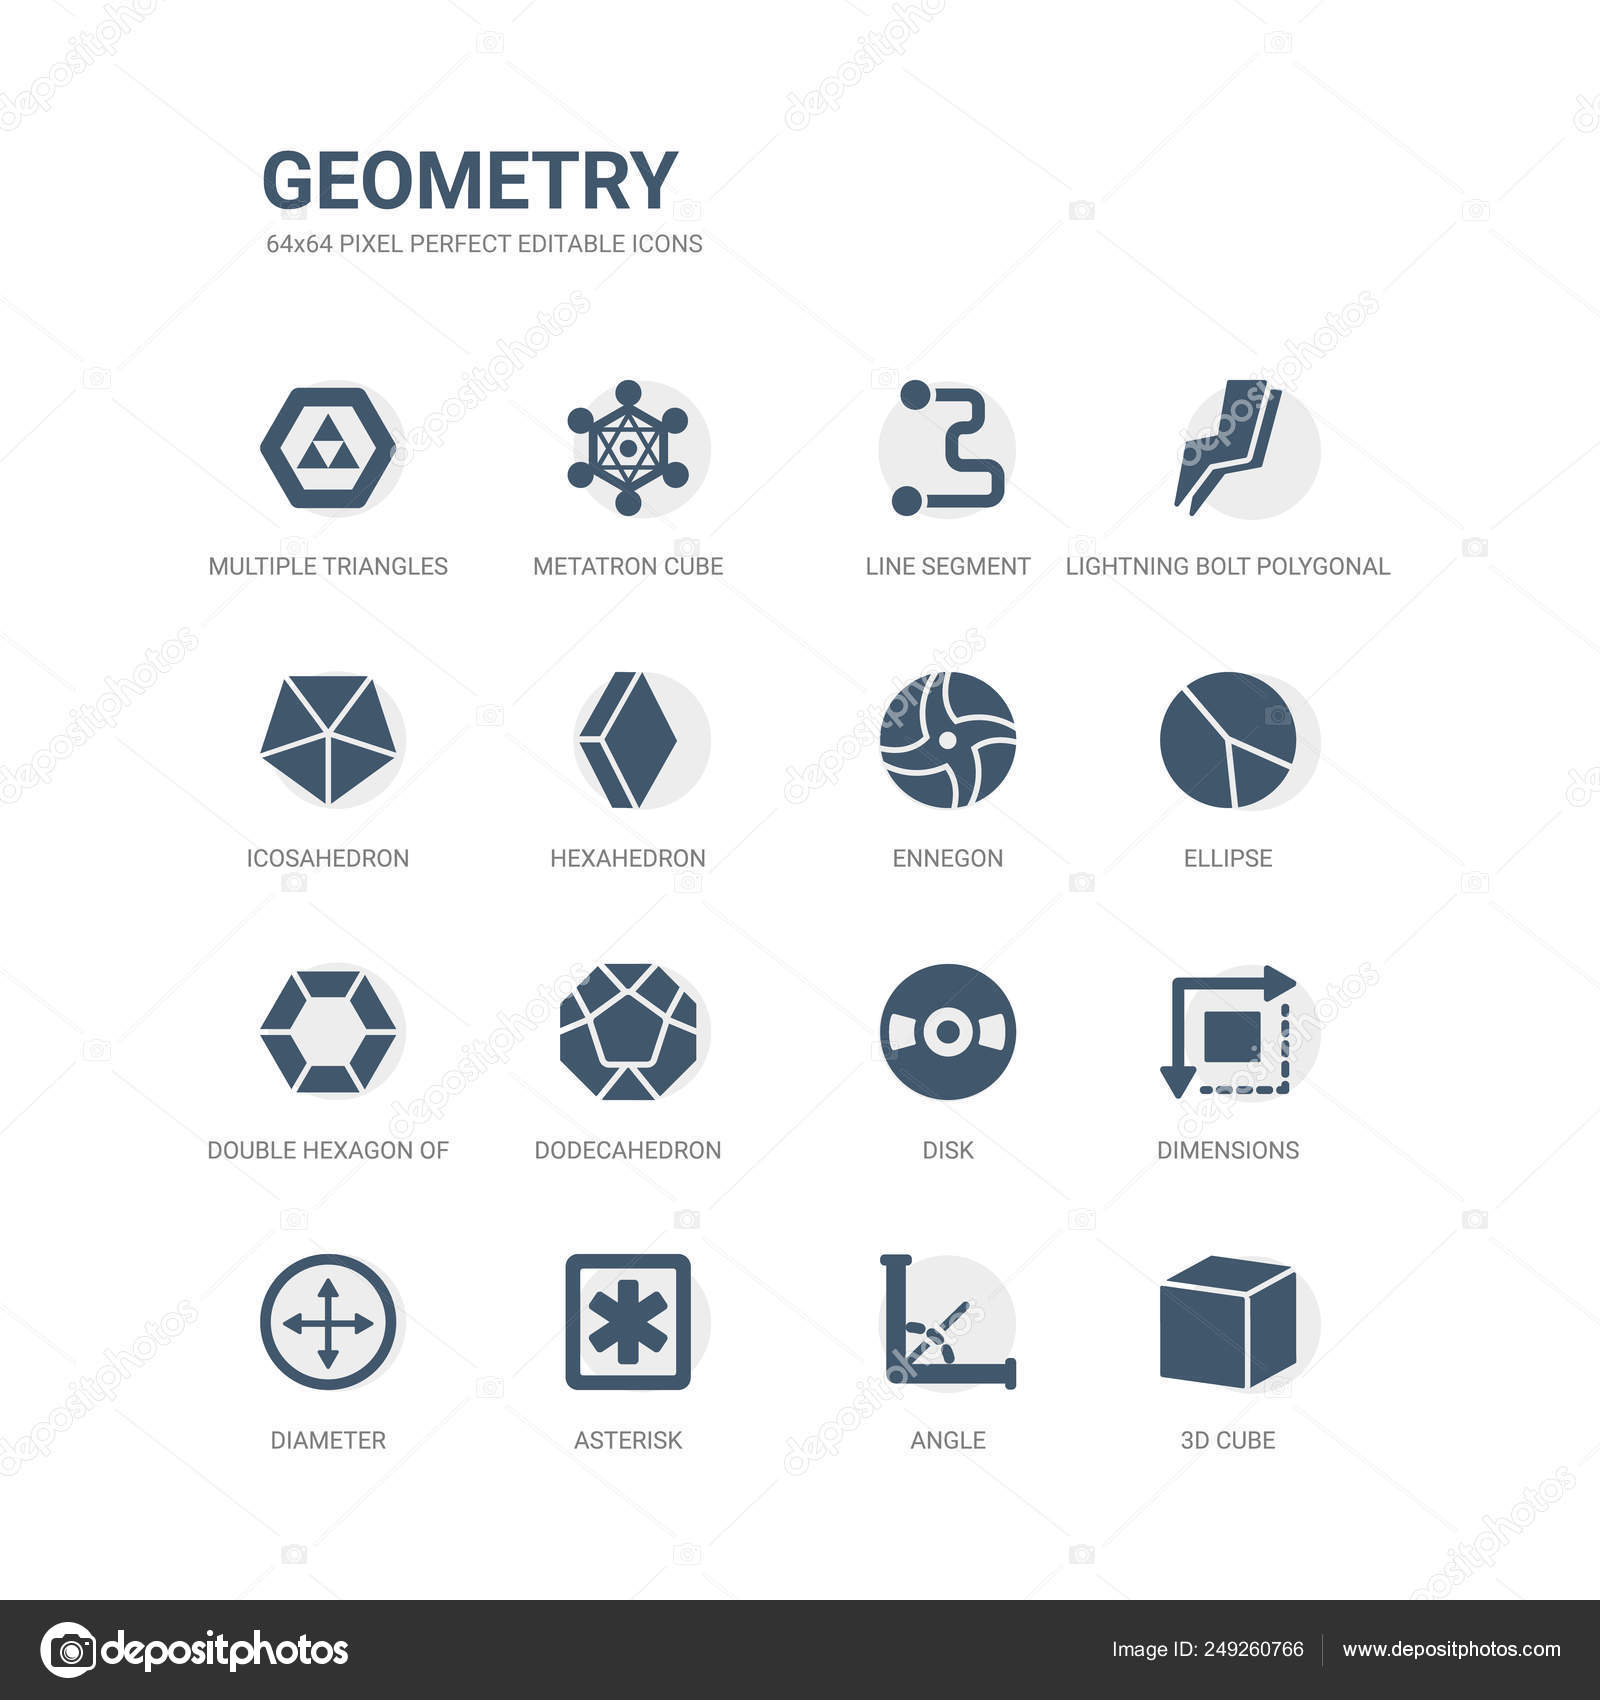 Simple set of icons such as 3d cube, angle, asterisk